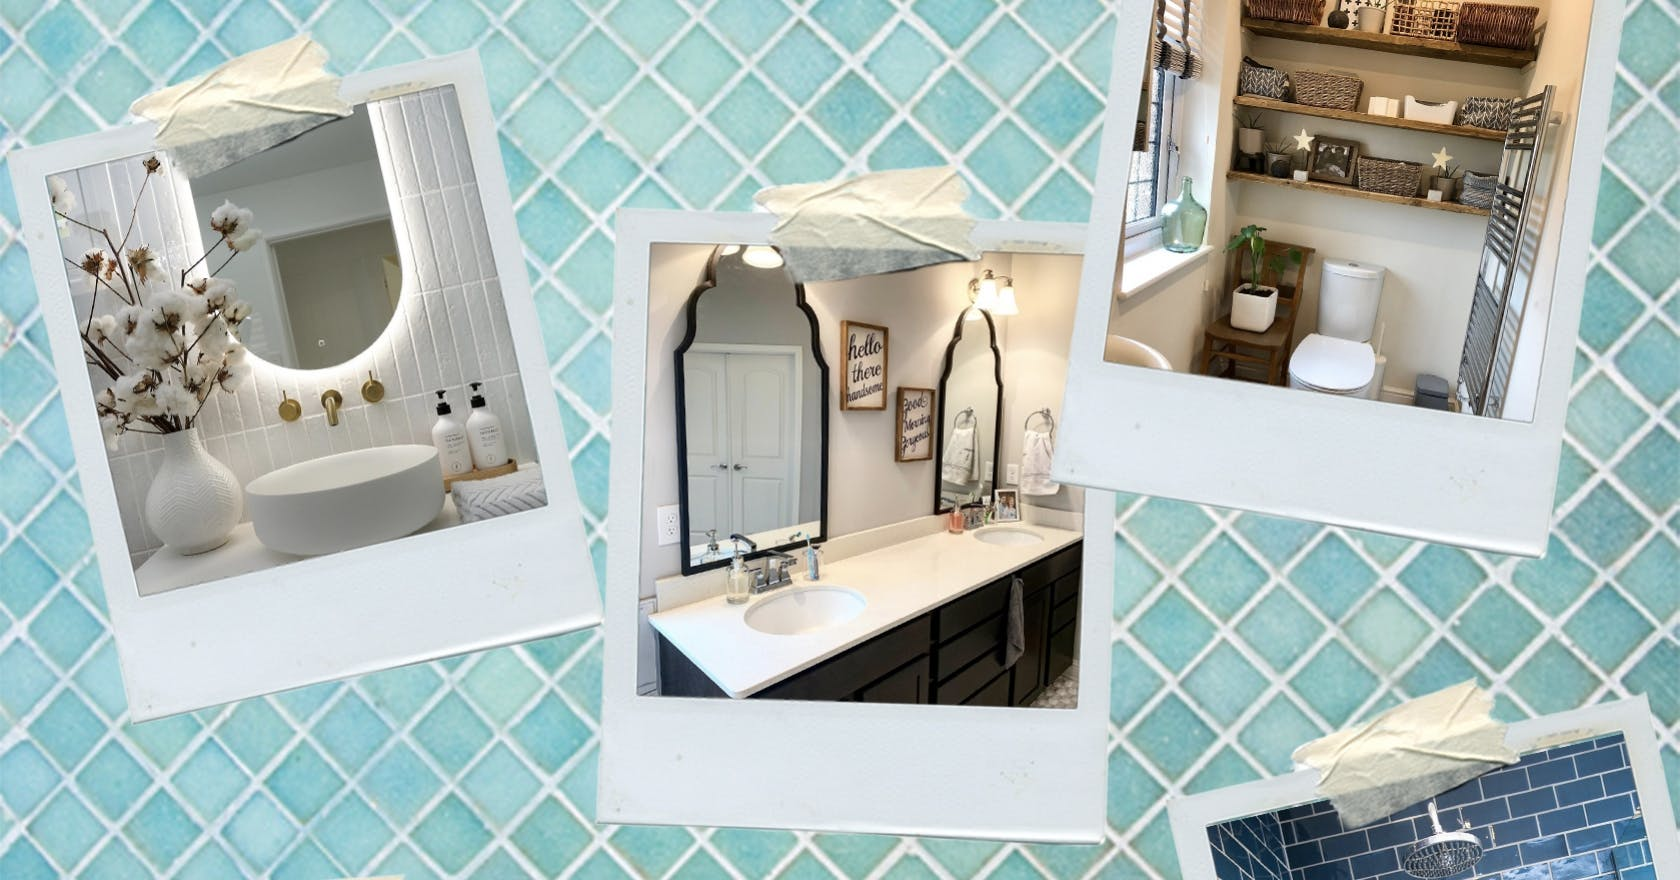 . Bathroom interior design trends from Instagram you need to try